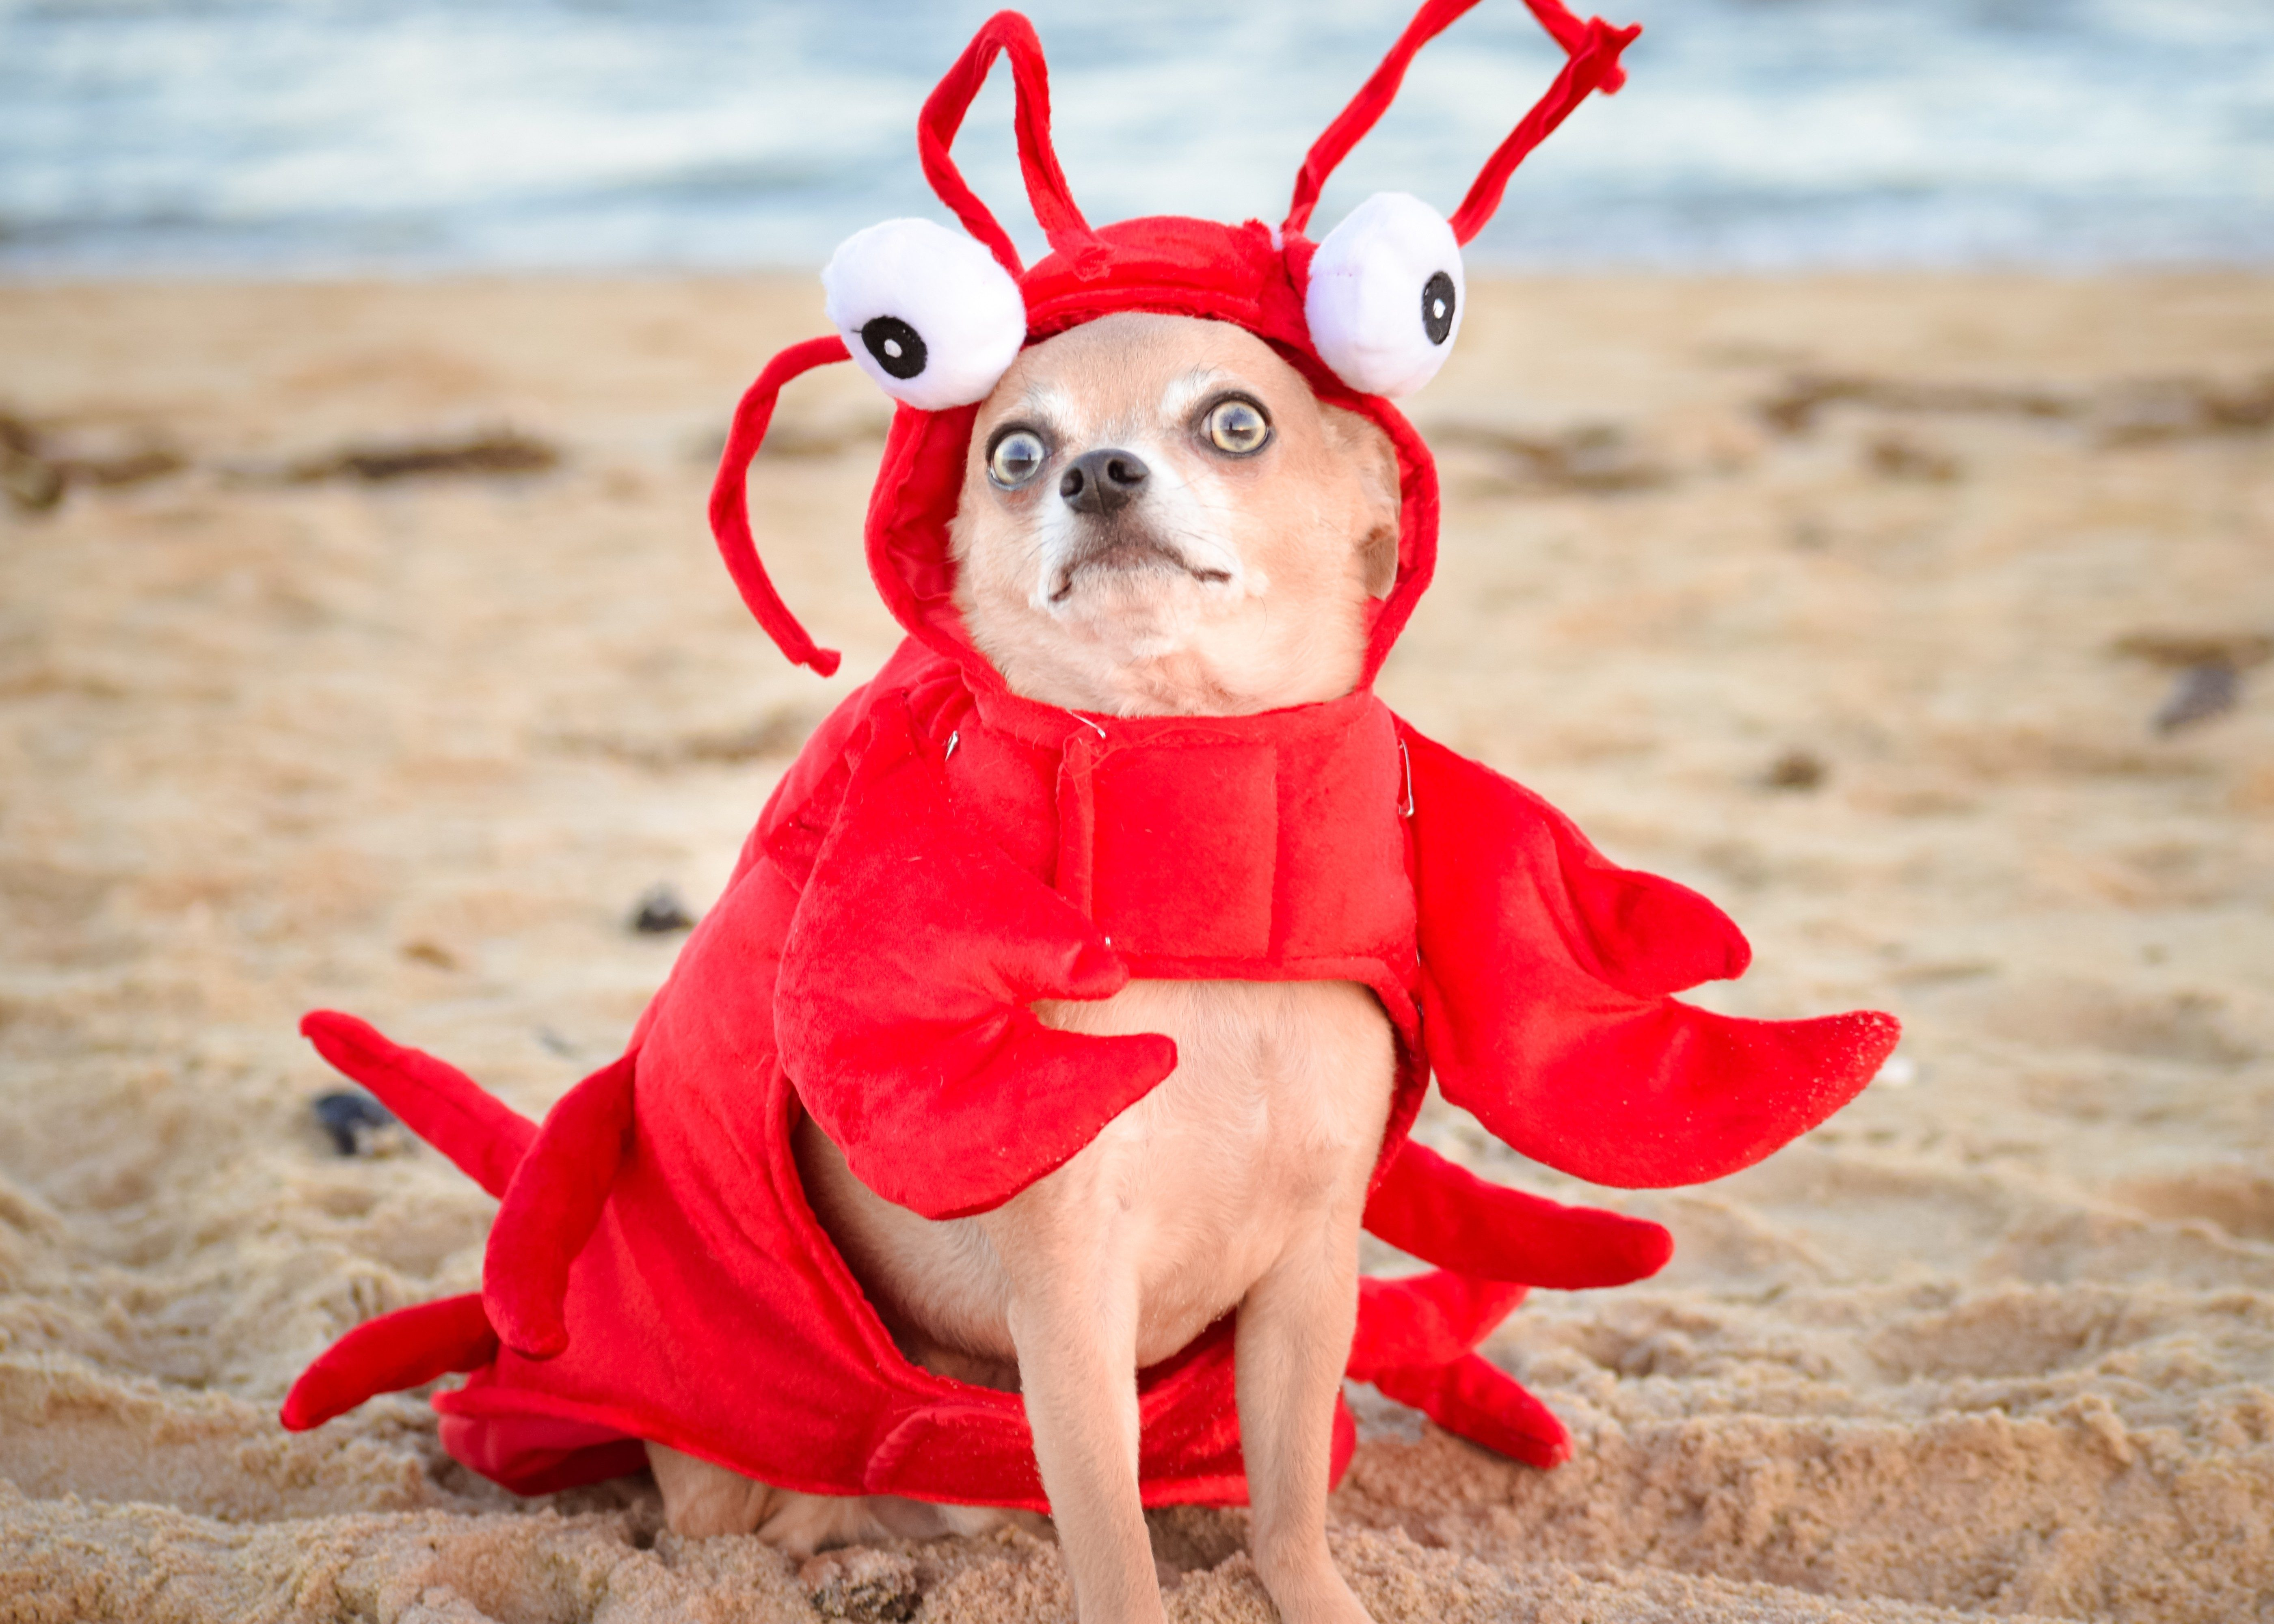 A Chihuahua lobster at the beach.